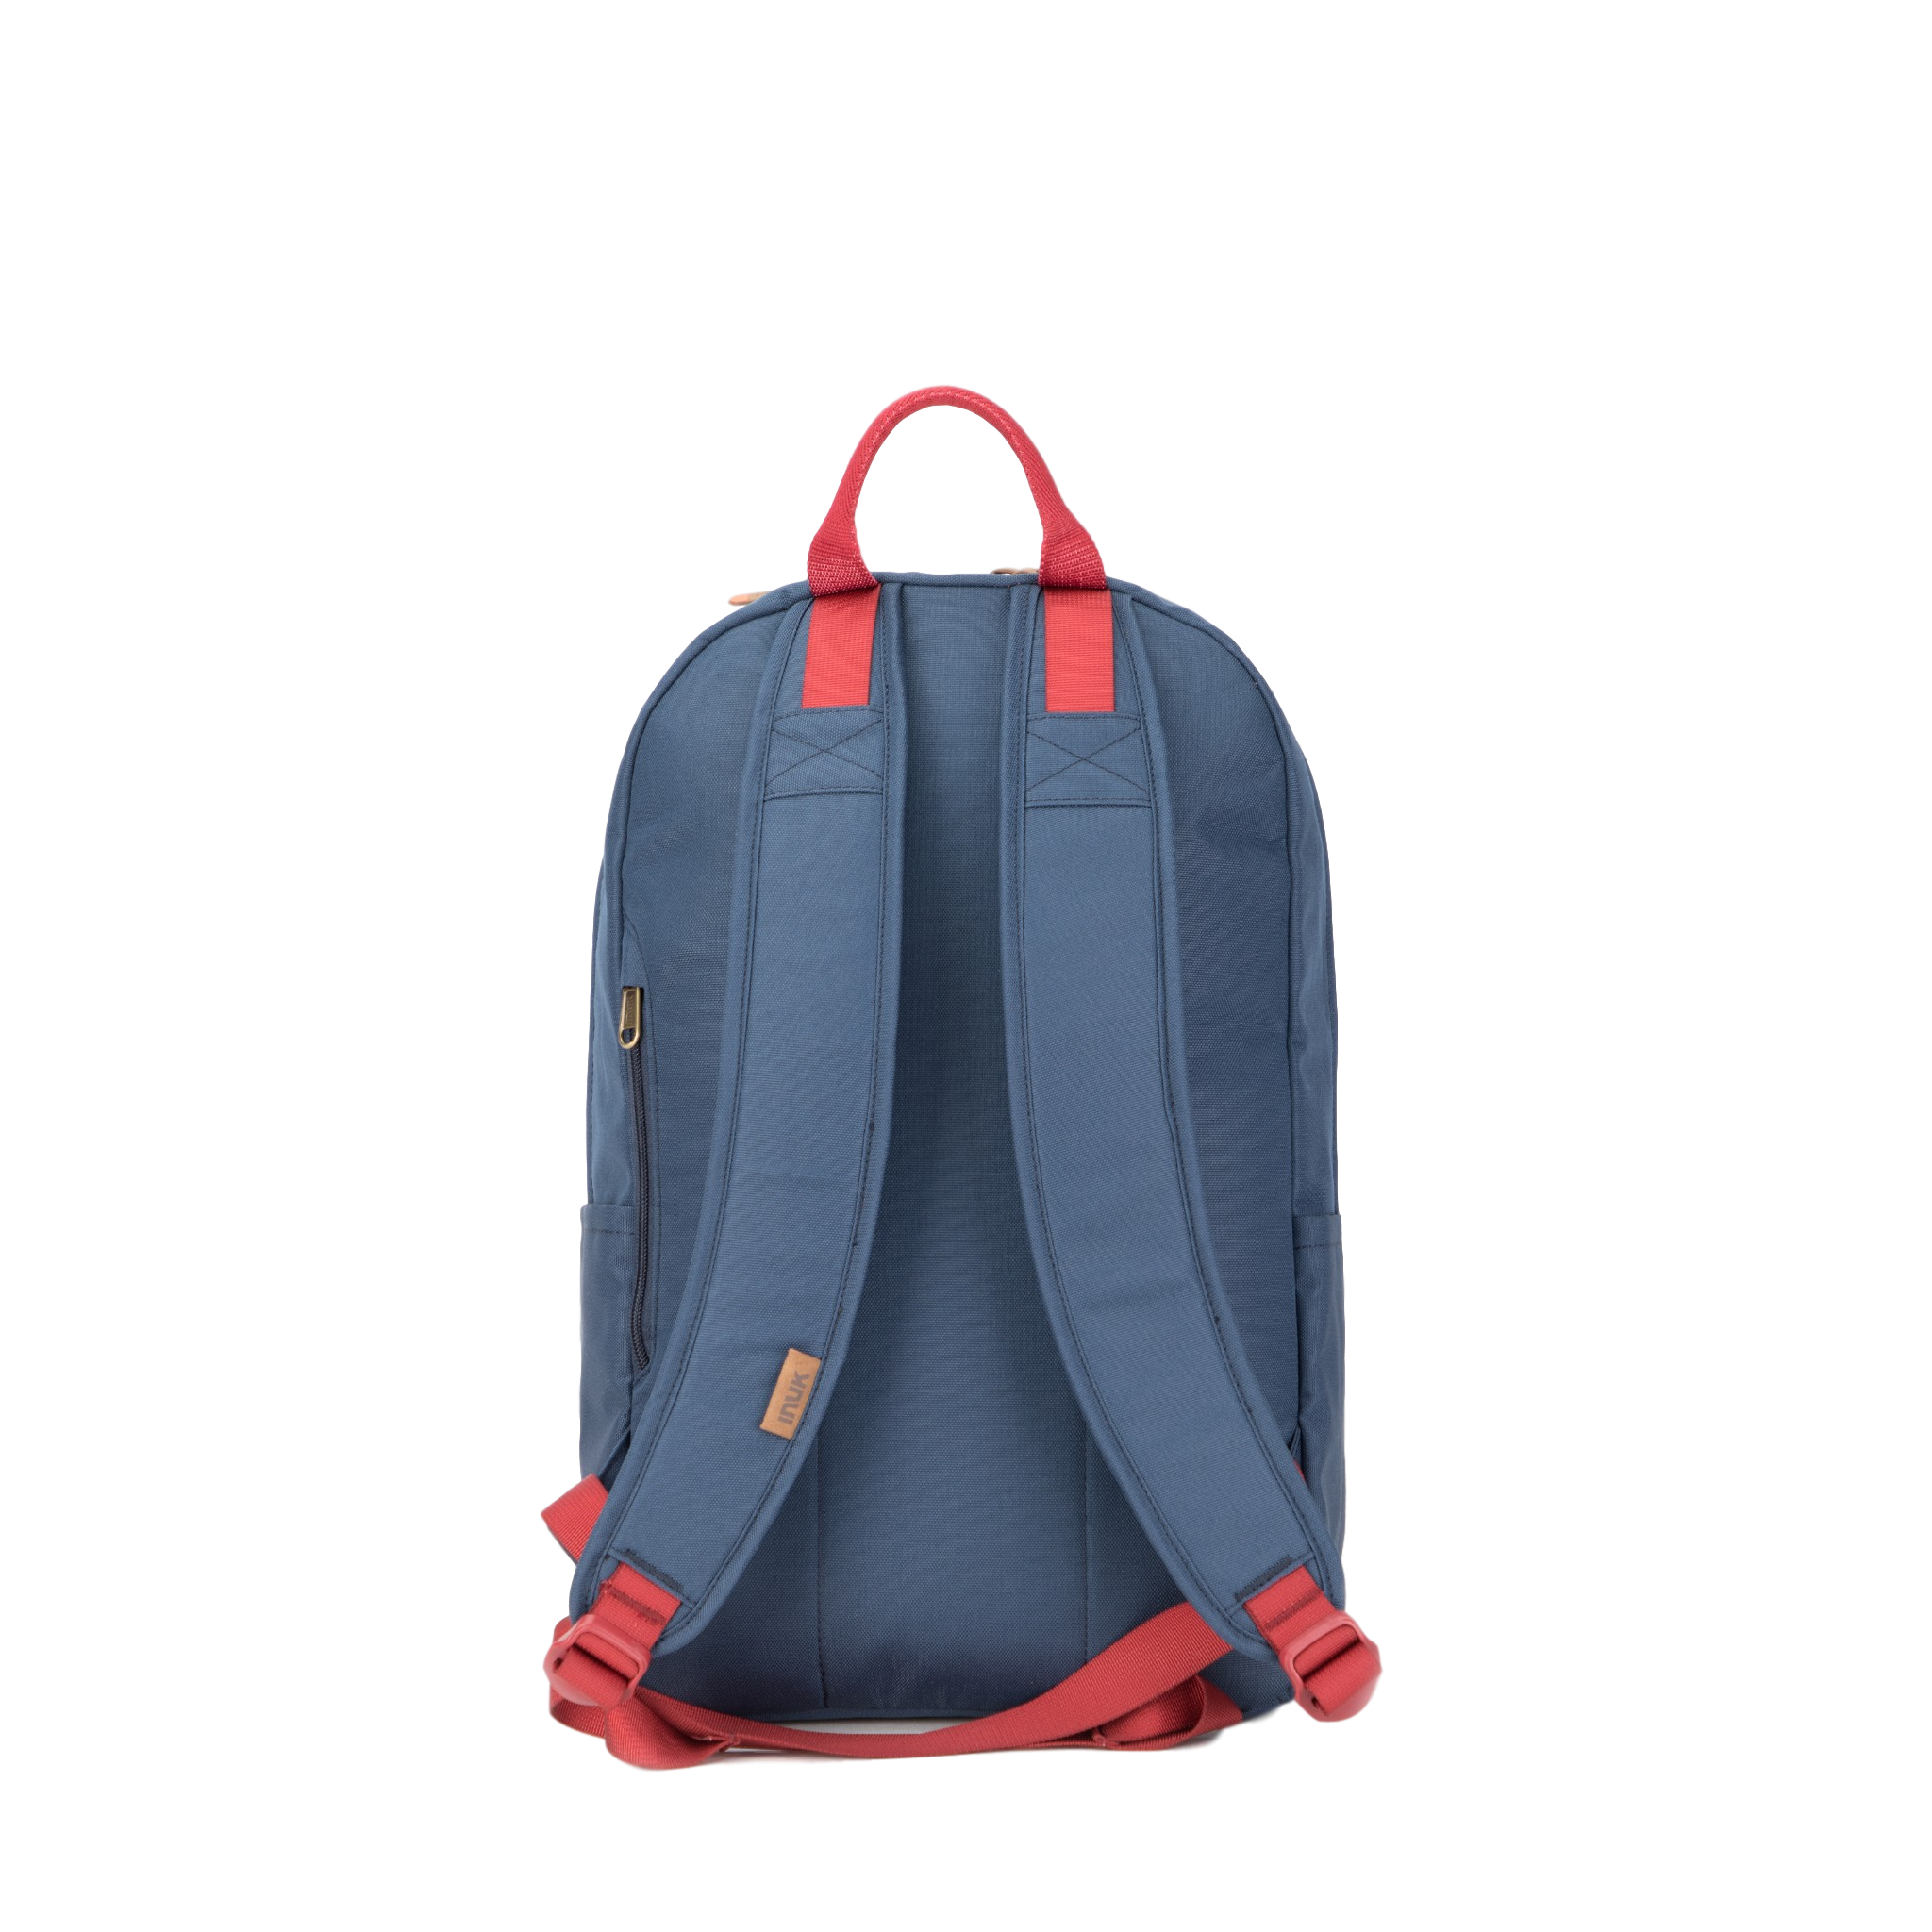 Primary Collection - Sparwood Backpack-Ocean Blue - INUK  BAGS